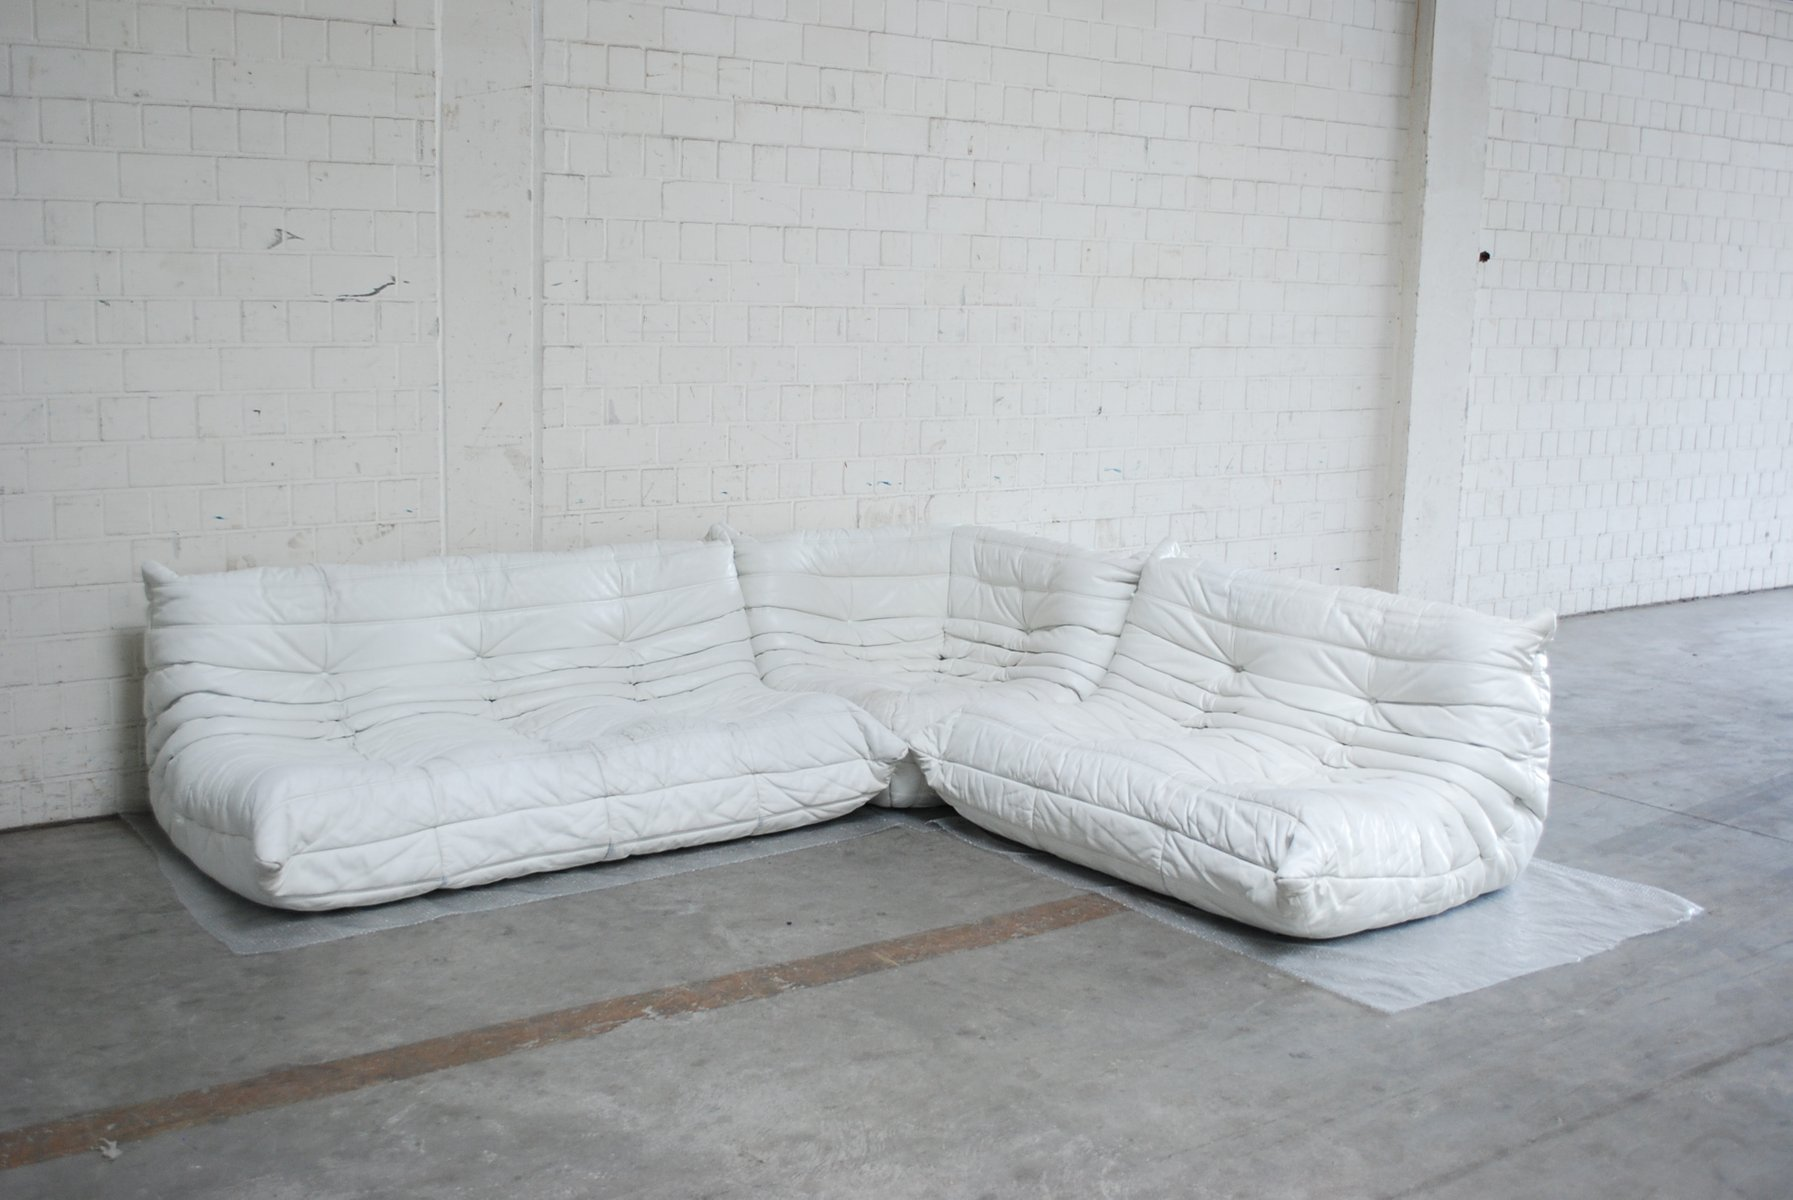 canap modulaire blanc togo en cuir de ligne roset en vente sur pamono. Black Bedroom Furniture Sets. Home Design Ideas